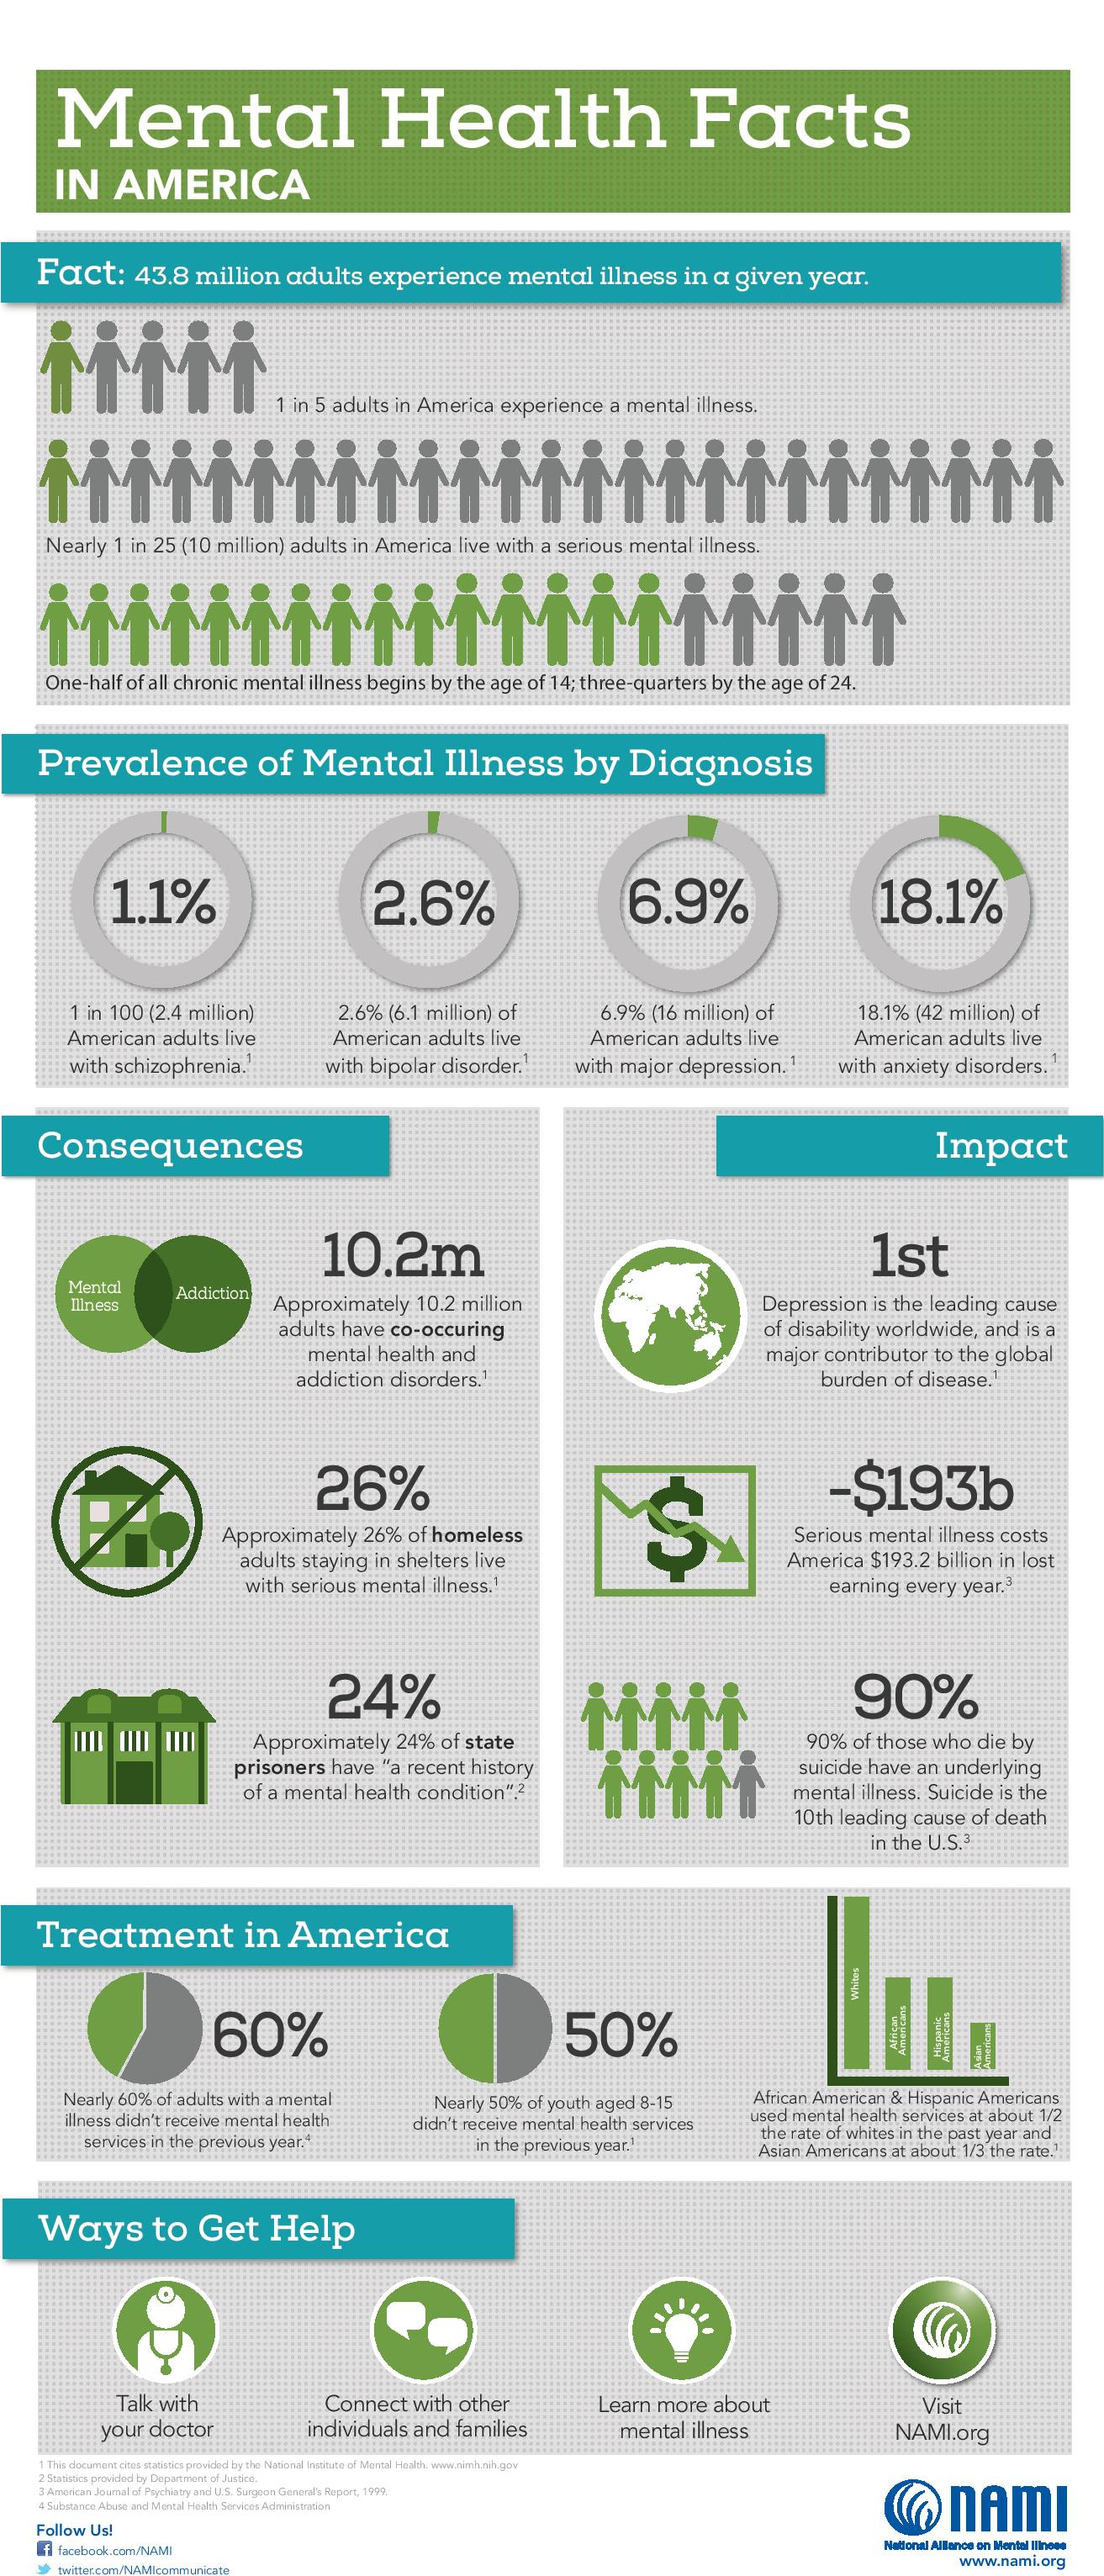 Mental Health Facts infographic from NAMI